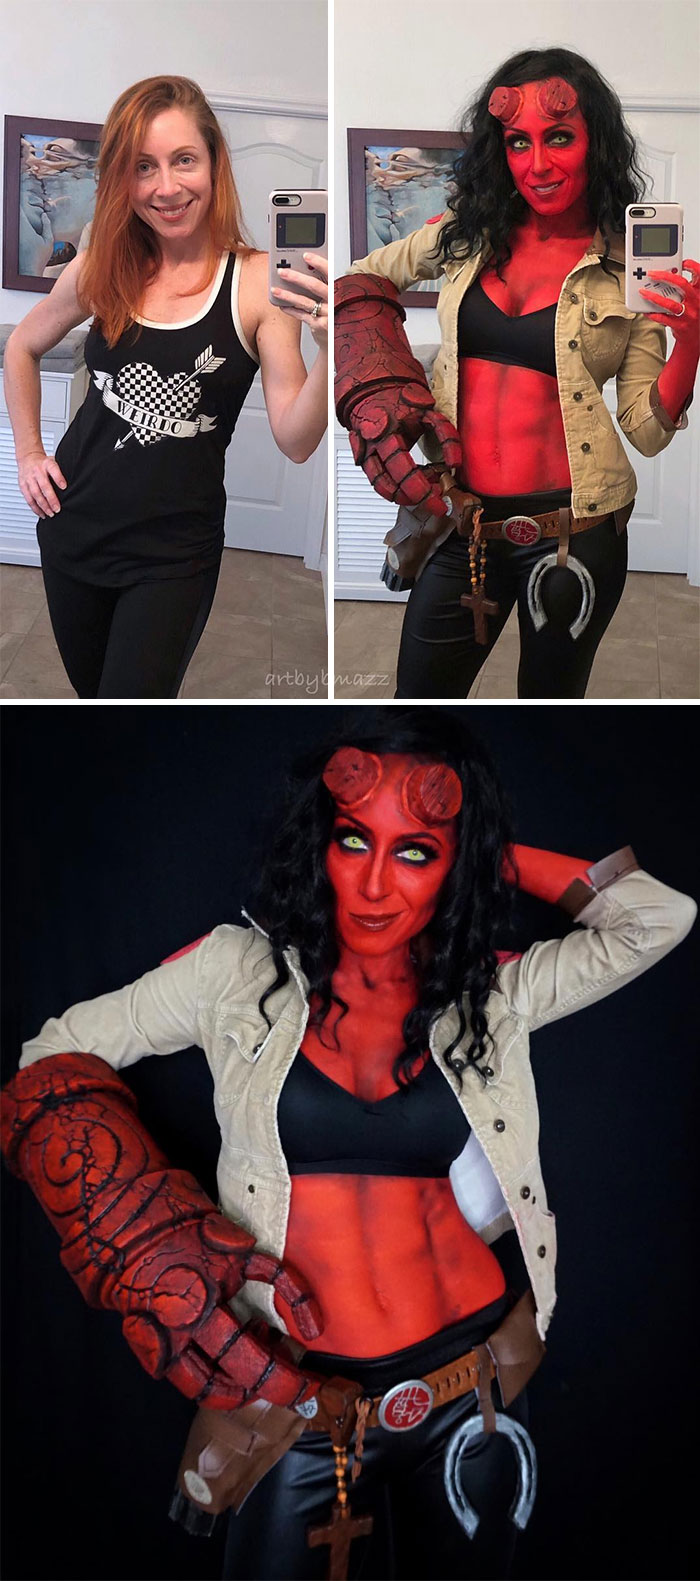 brenna mazzoni epic cosplay transformations hellgirl